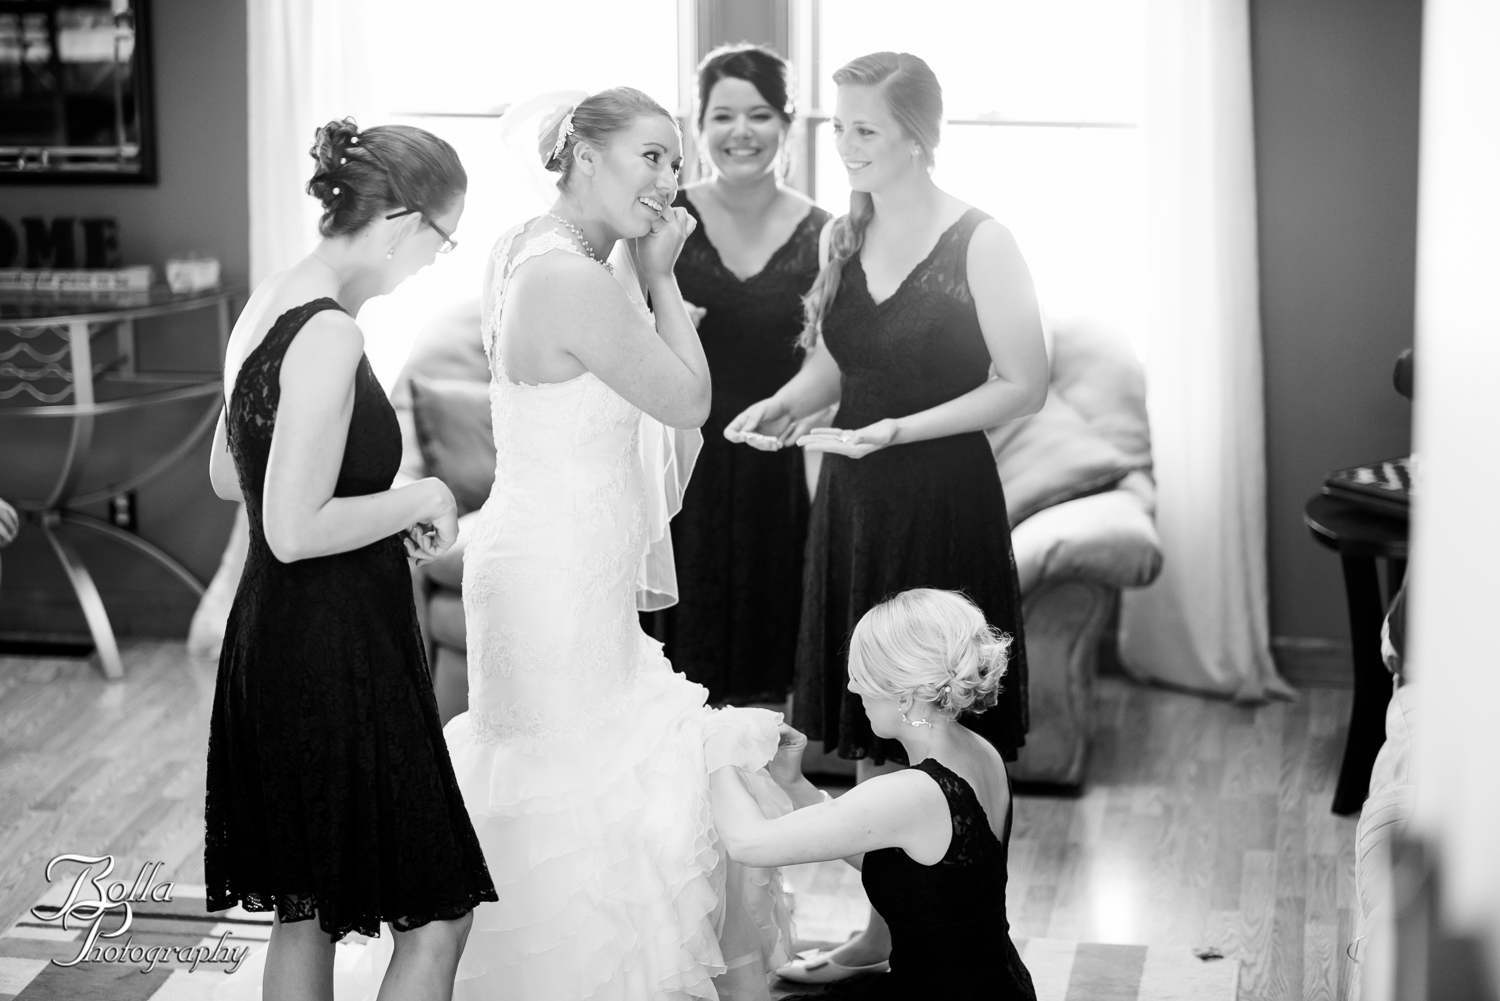 Bolla_Photography_St_Louis_wedding_photographer-0144.jpg